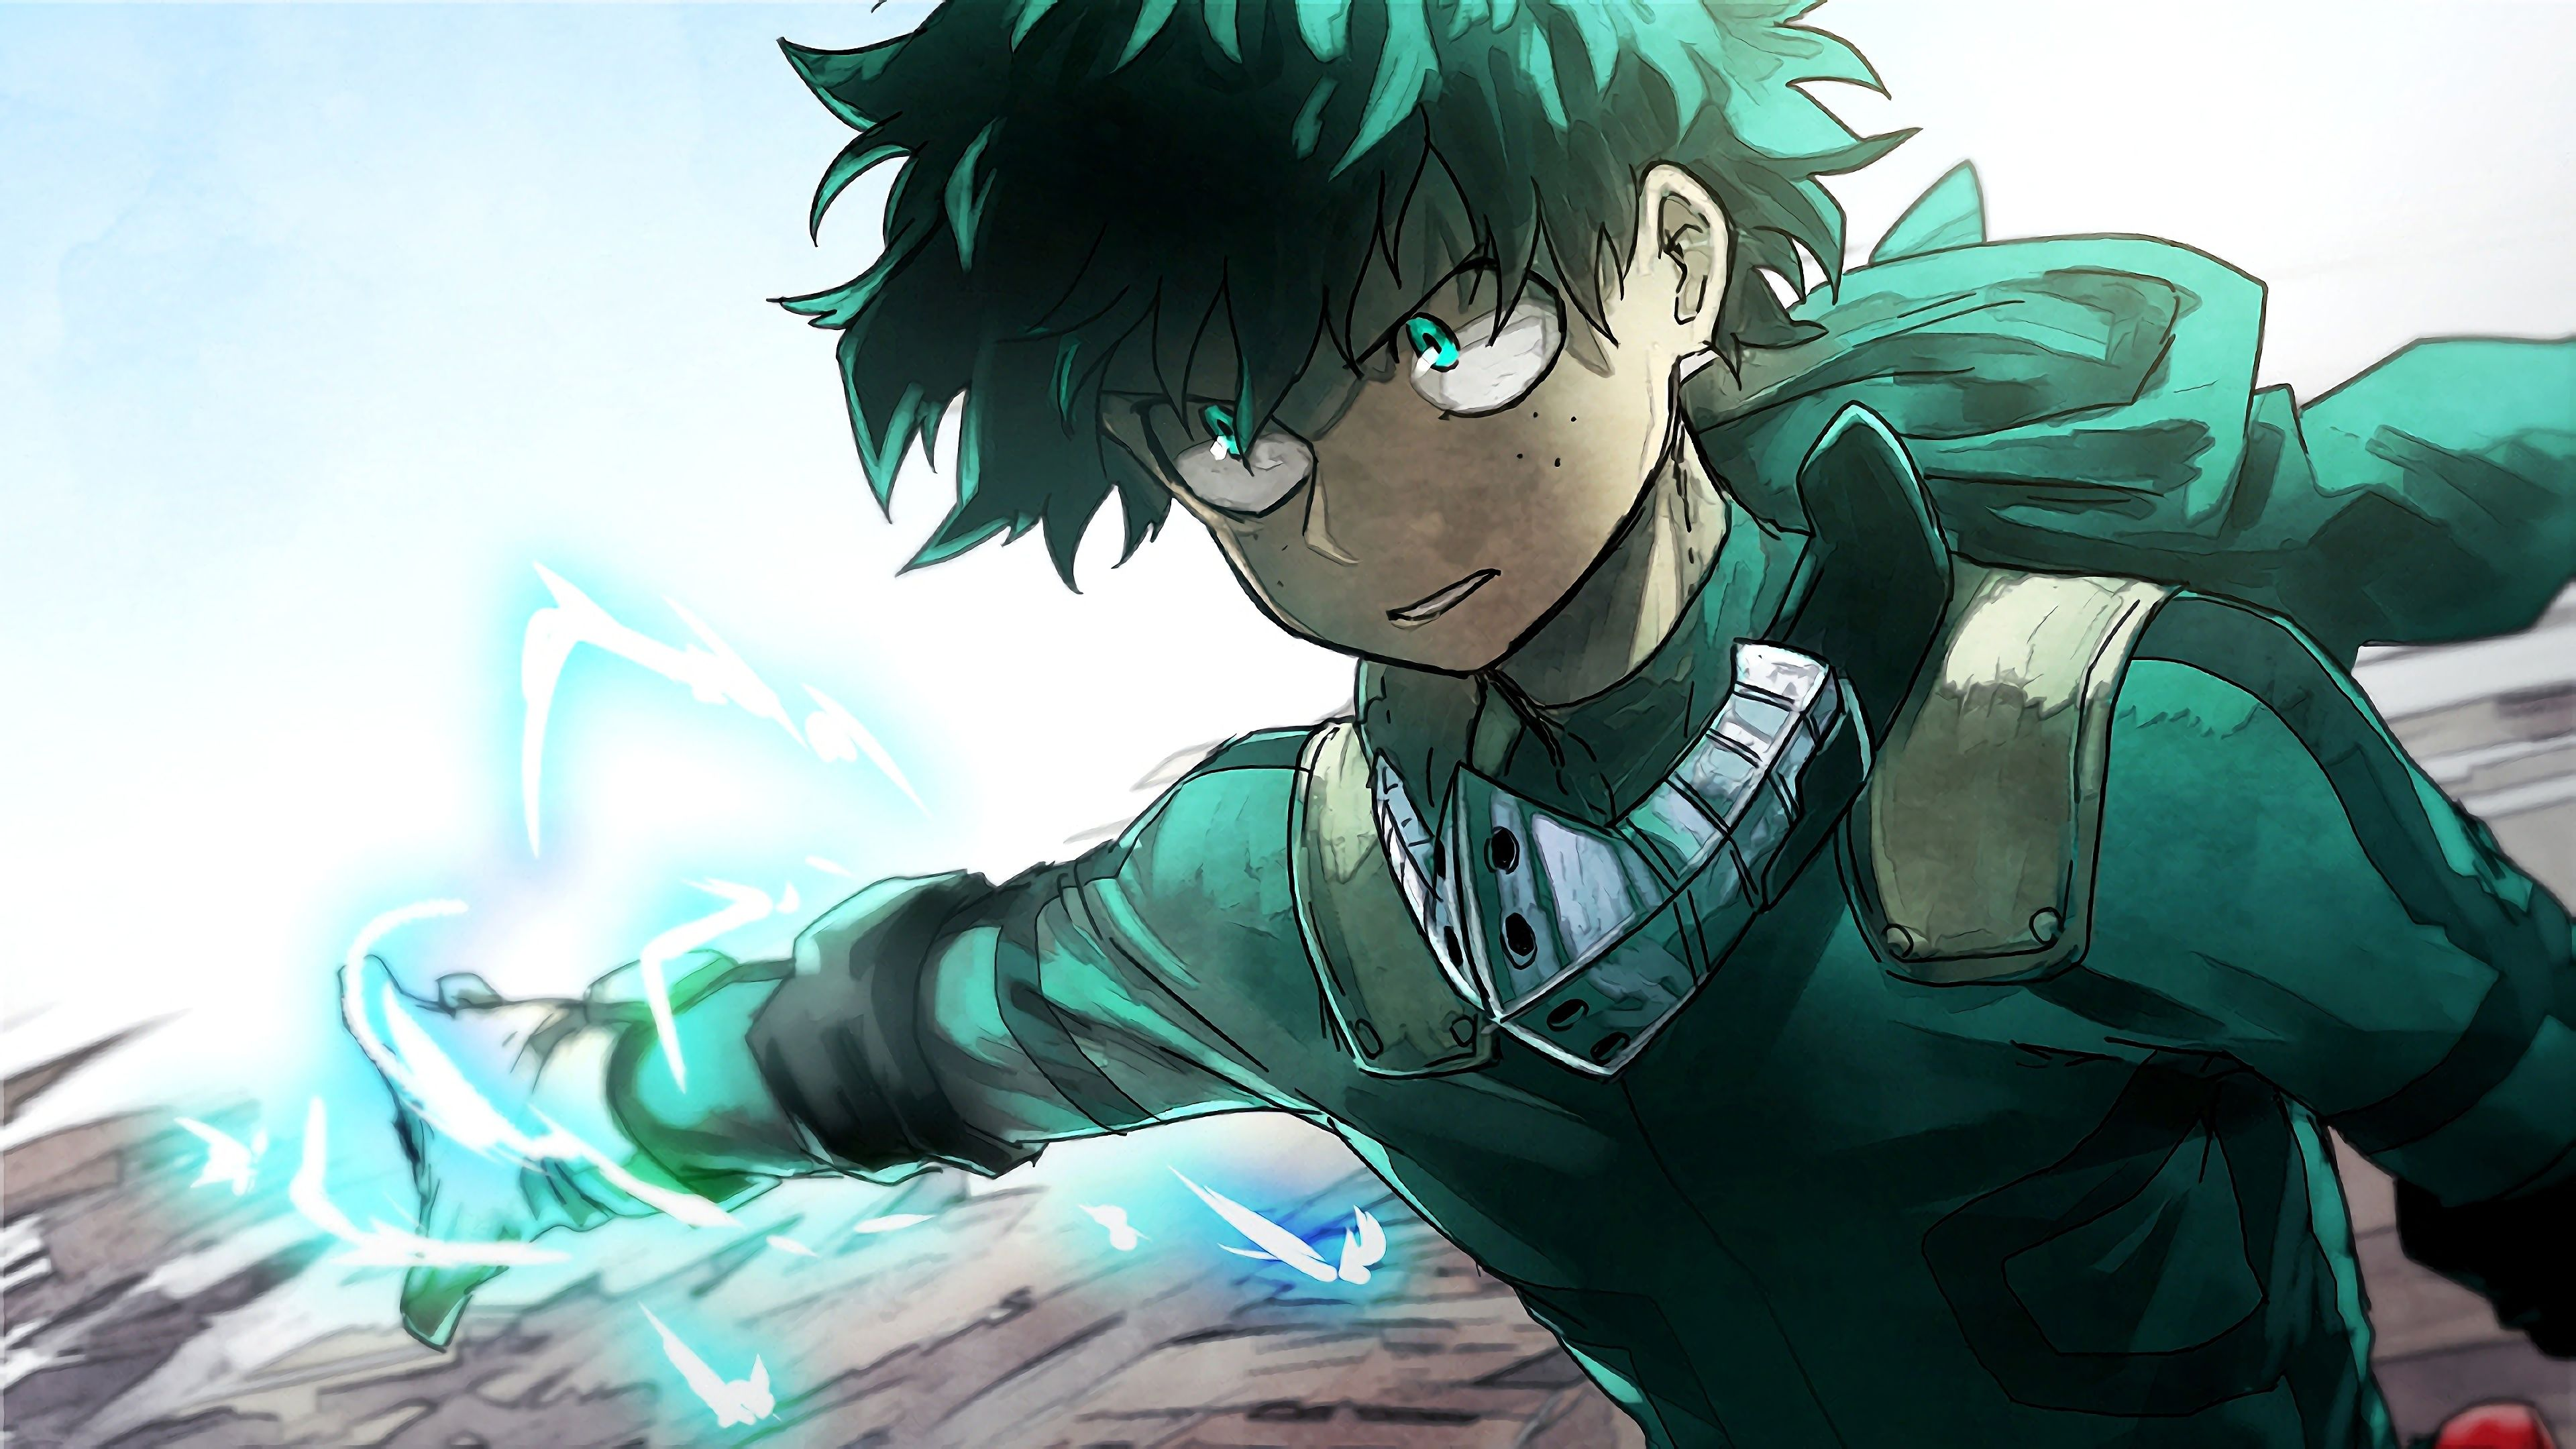 Izuku Midoriya My Hero Academia Boku No Hero Academia Anime 3840x2160 Wallpaper My Hero Boku No Hero Academia My Hero Academia